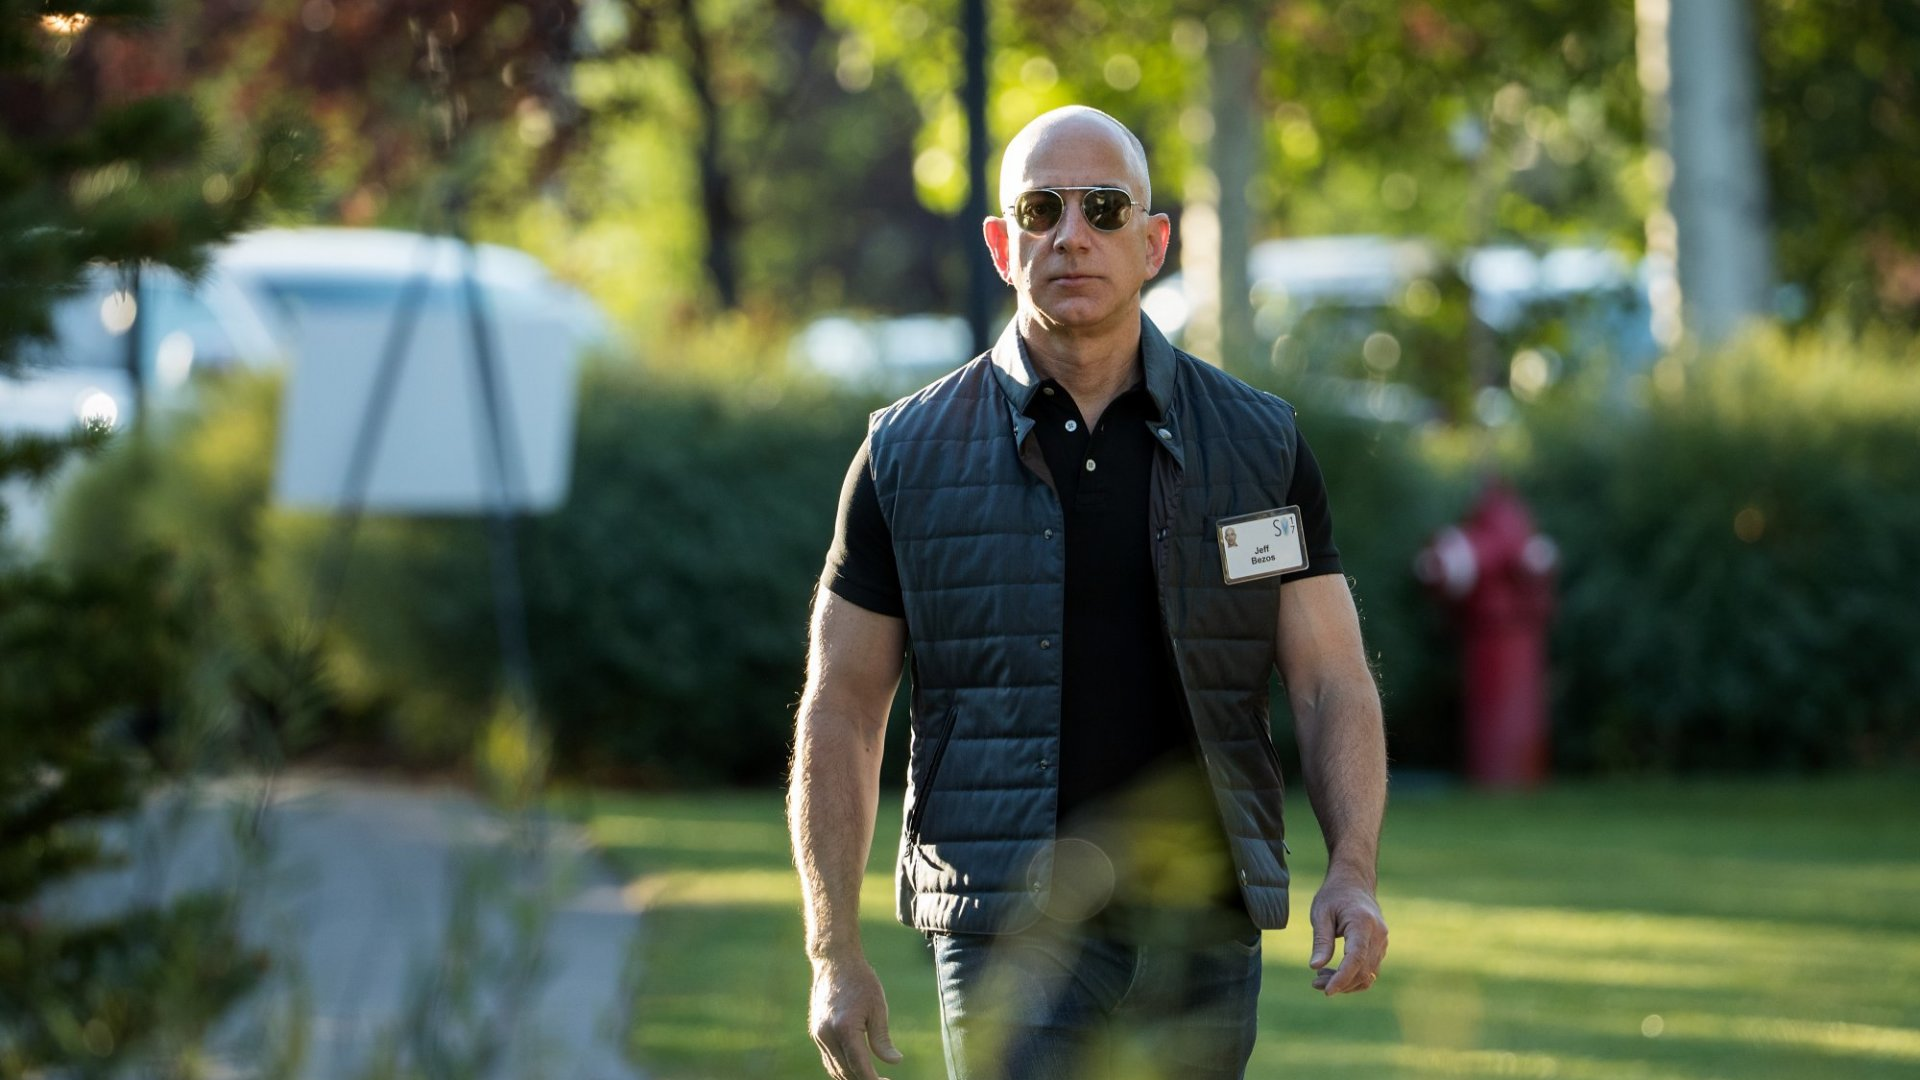 Does Jeff Bezos need a prenup? Do you? Does your child?